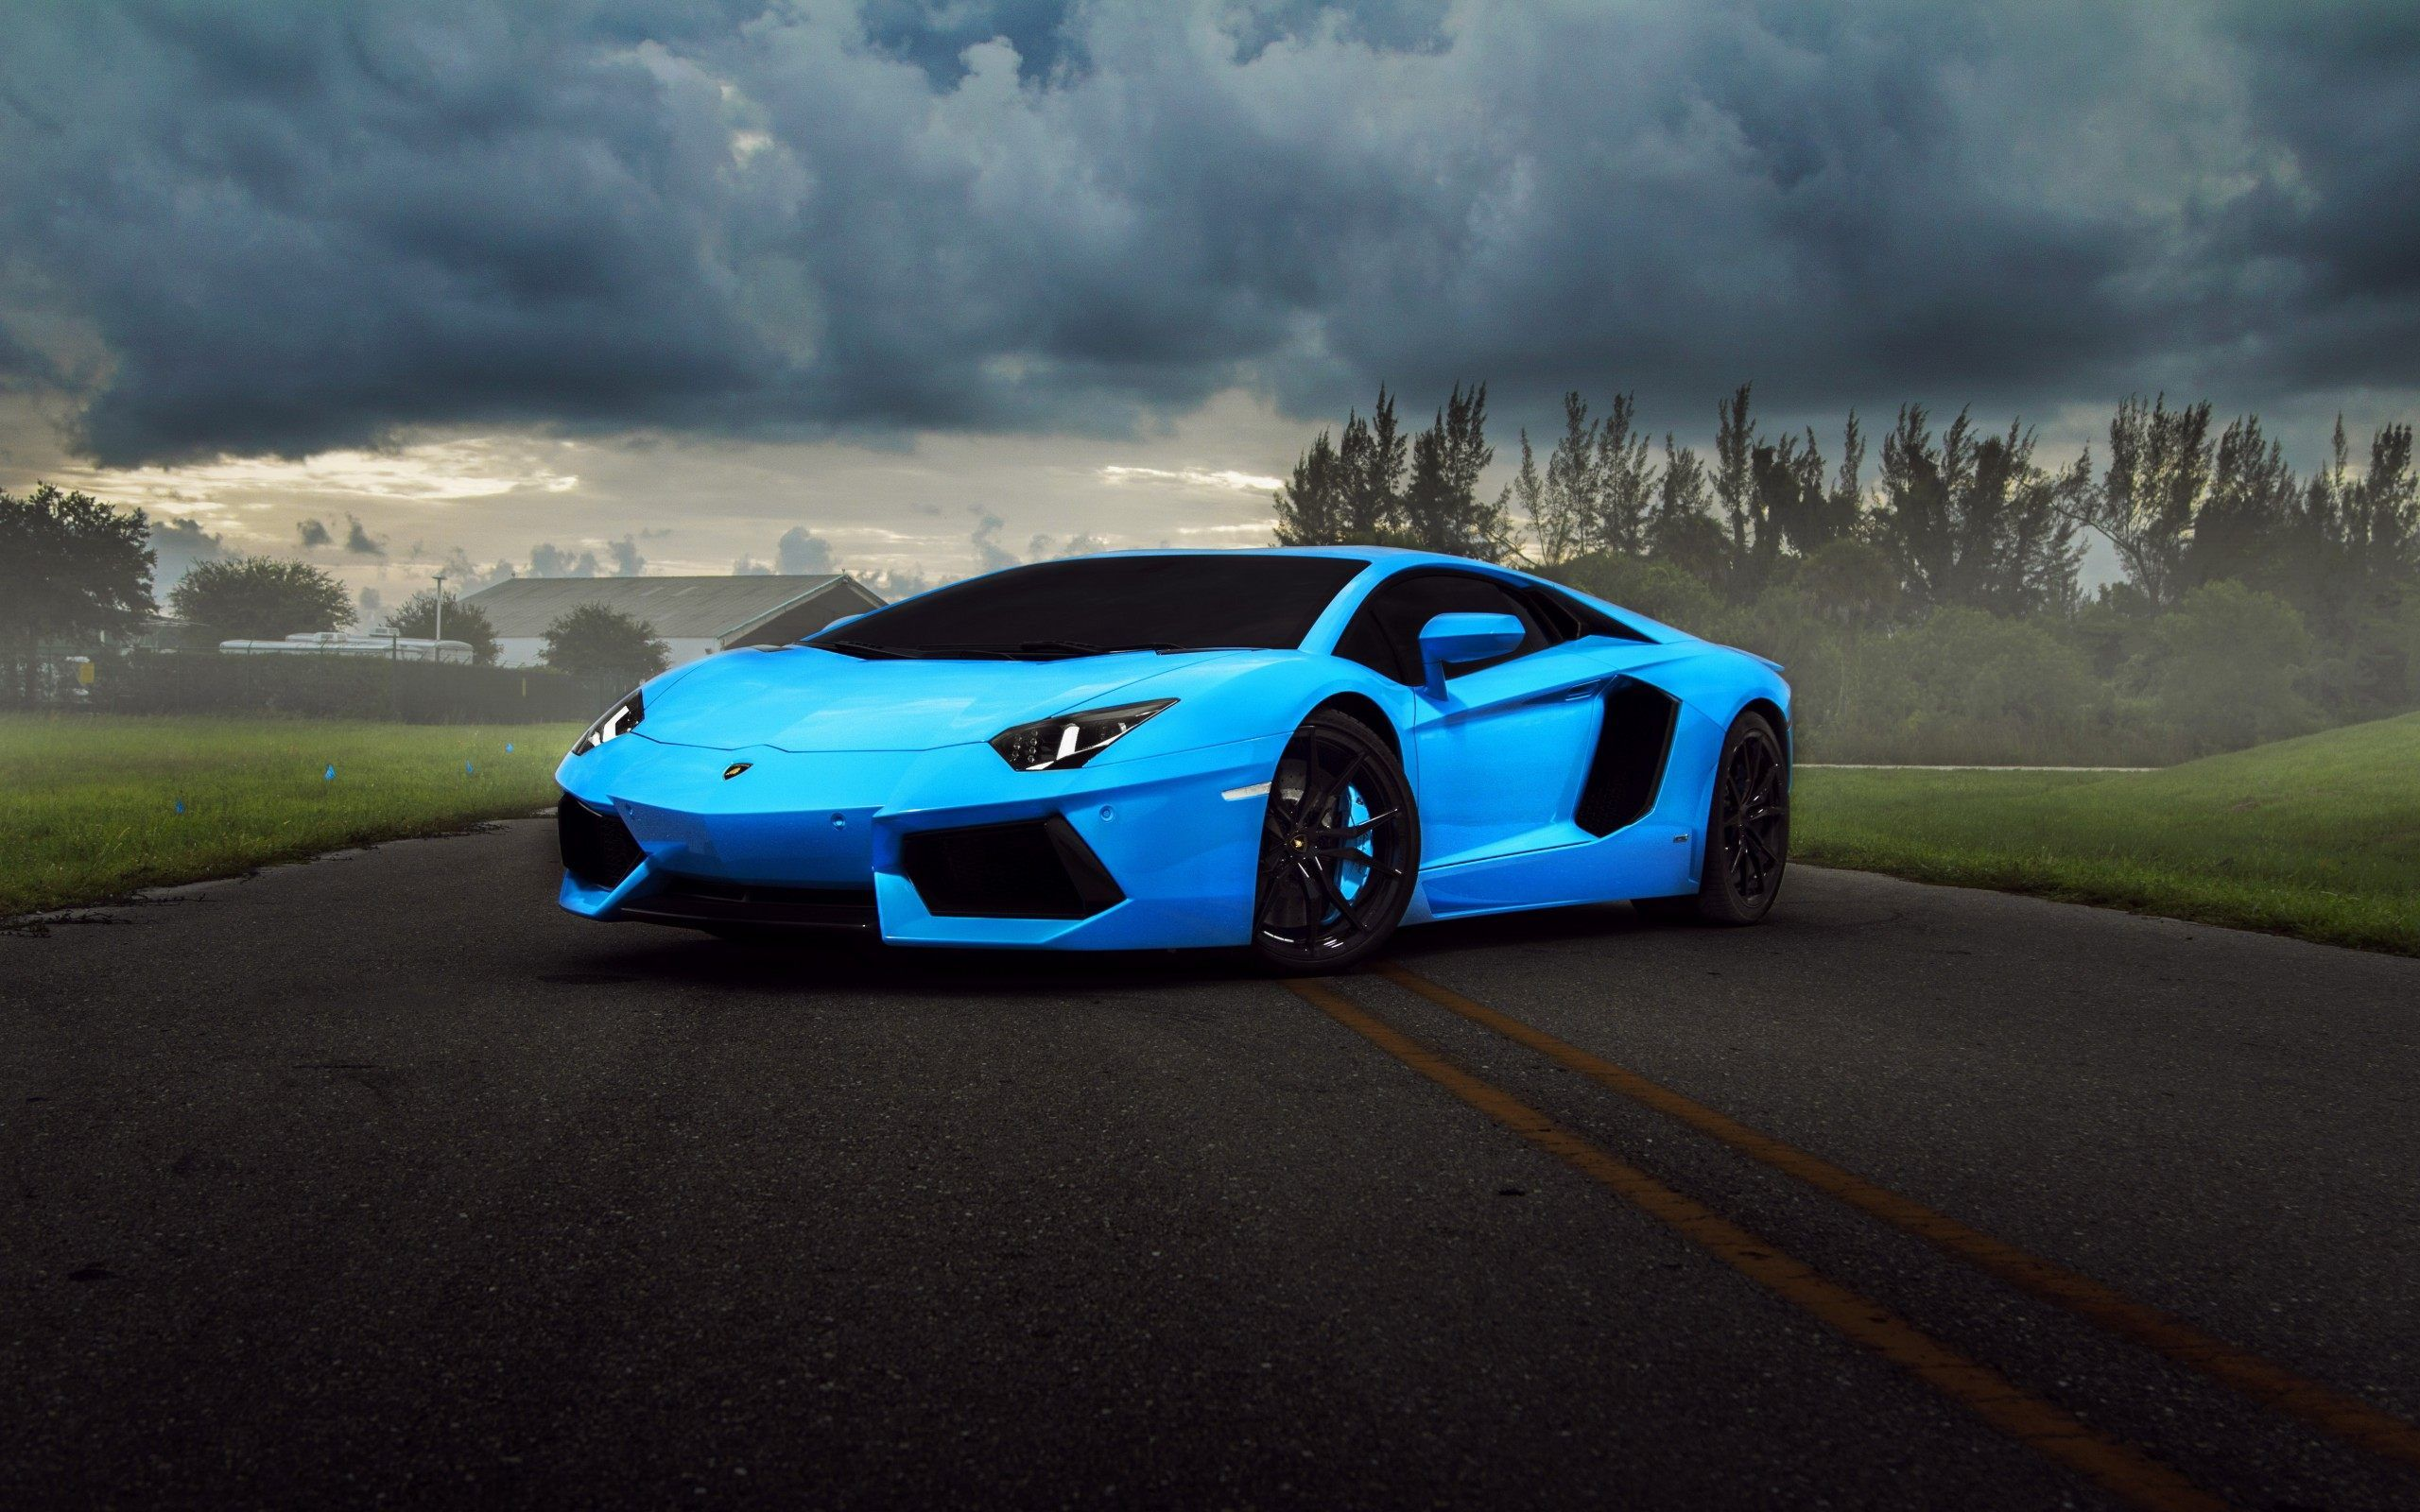 Blue Lamborghini Wallpapers Free